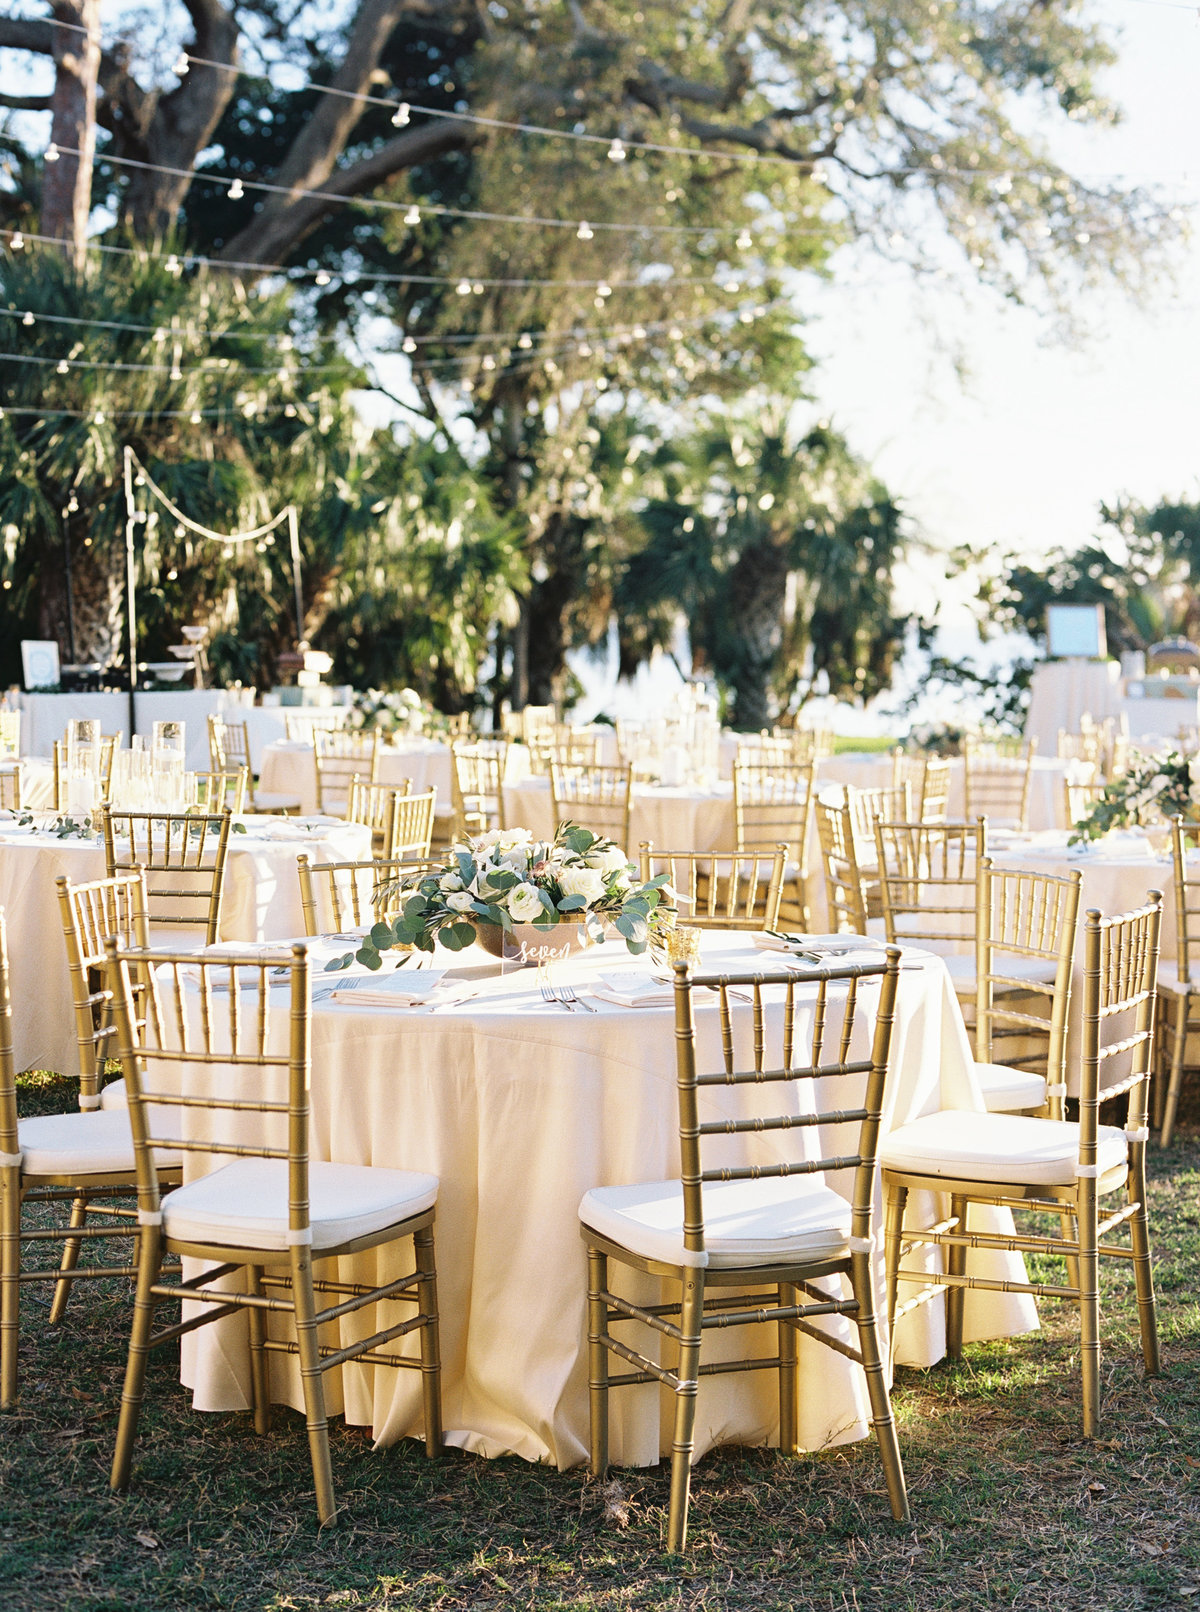 Garden lawn wedding with gold chairs and elegant decor